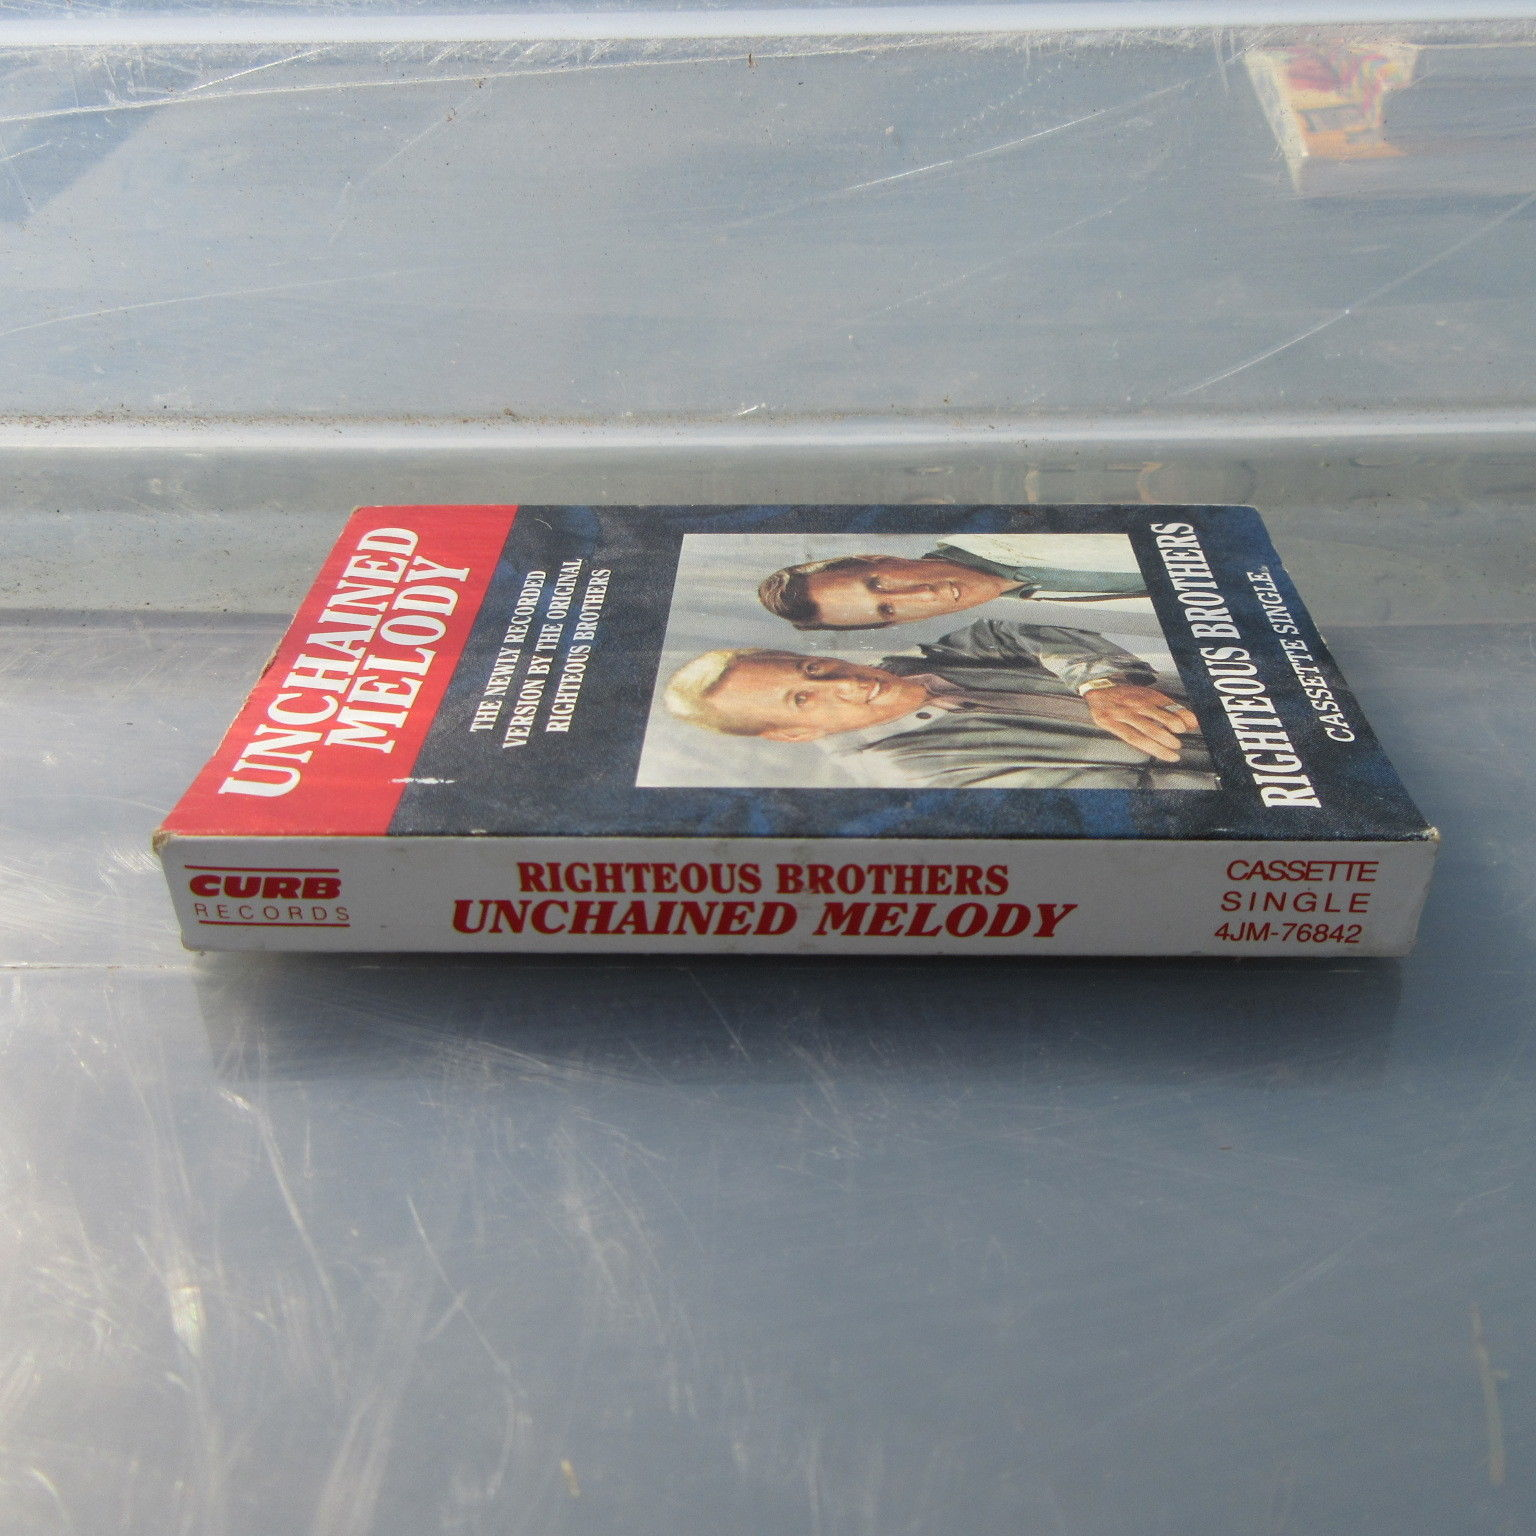 Unchained Melody by The Righteous Brother Cassette Single 1990 Curb !